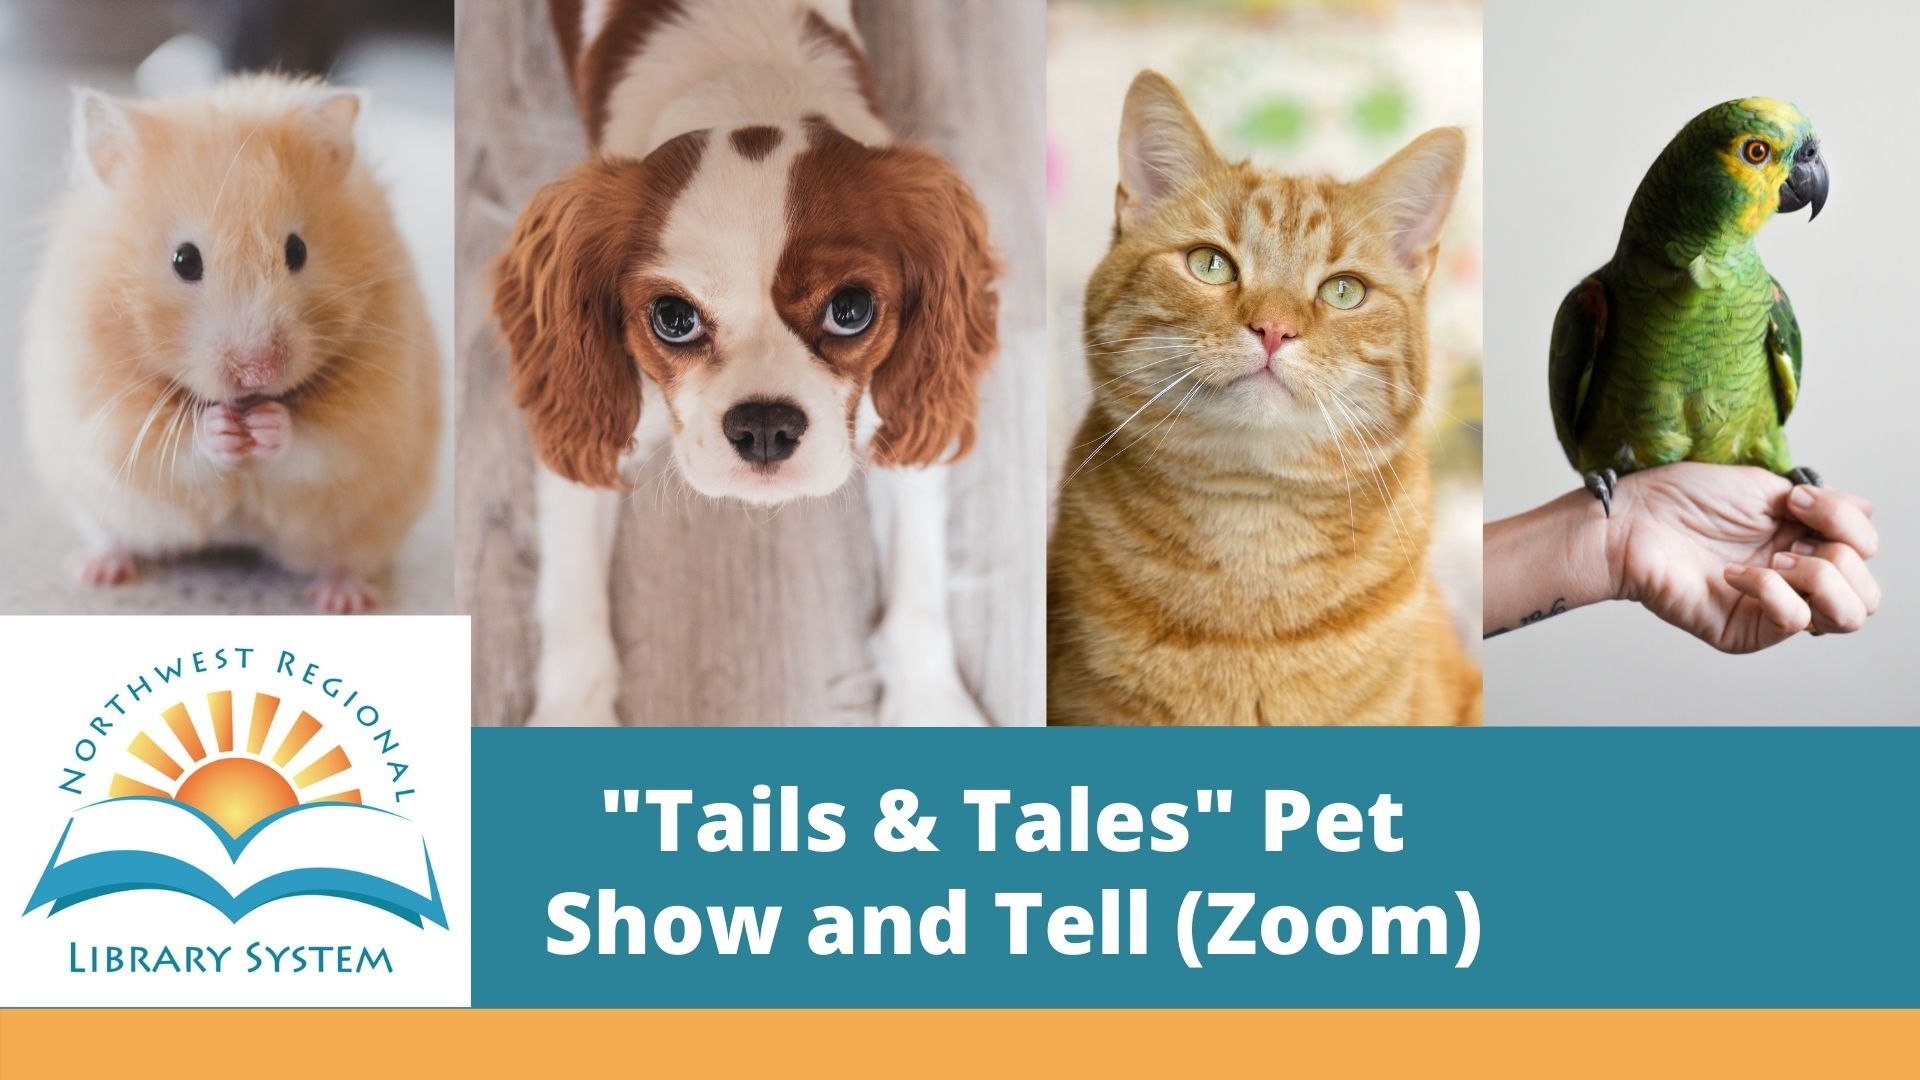 Pet Show and Tell (Zoom)